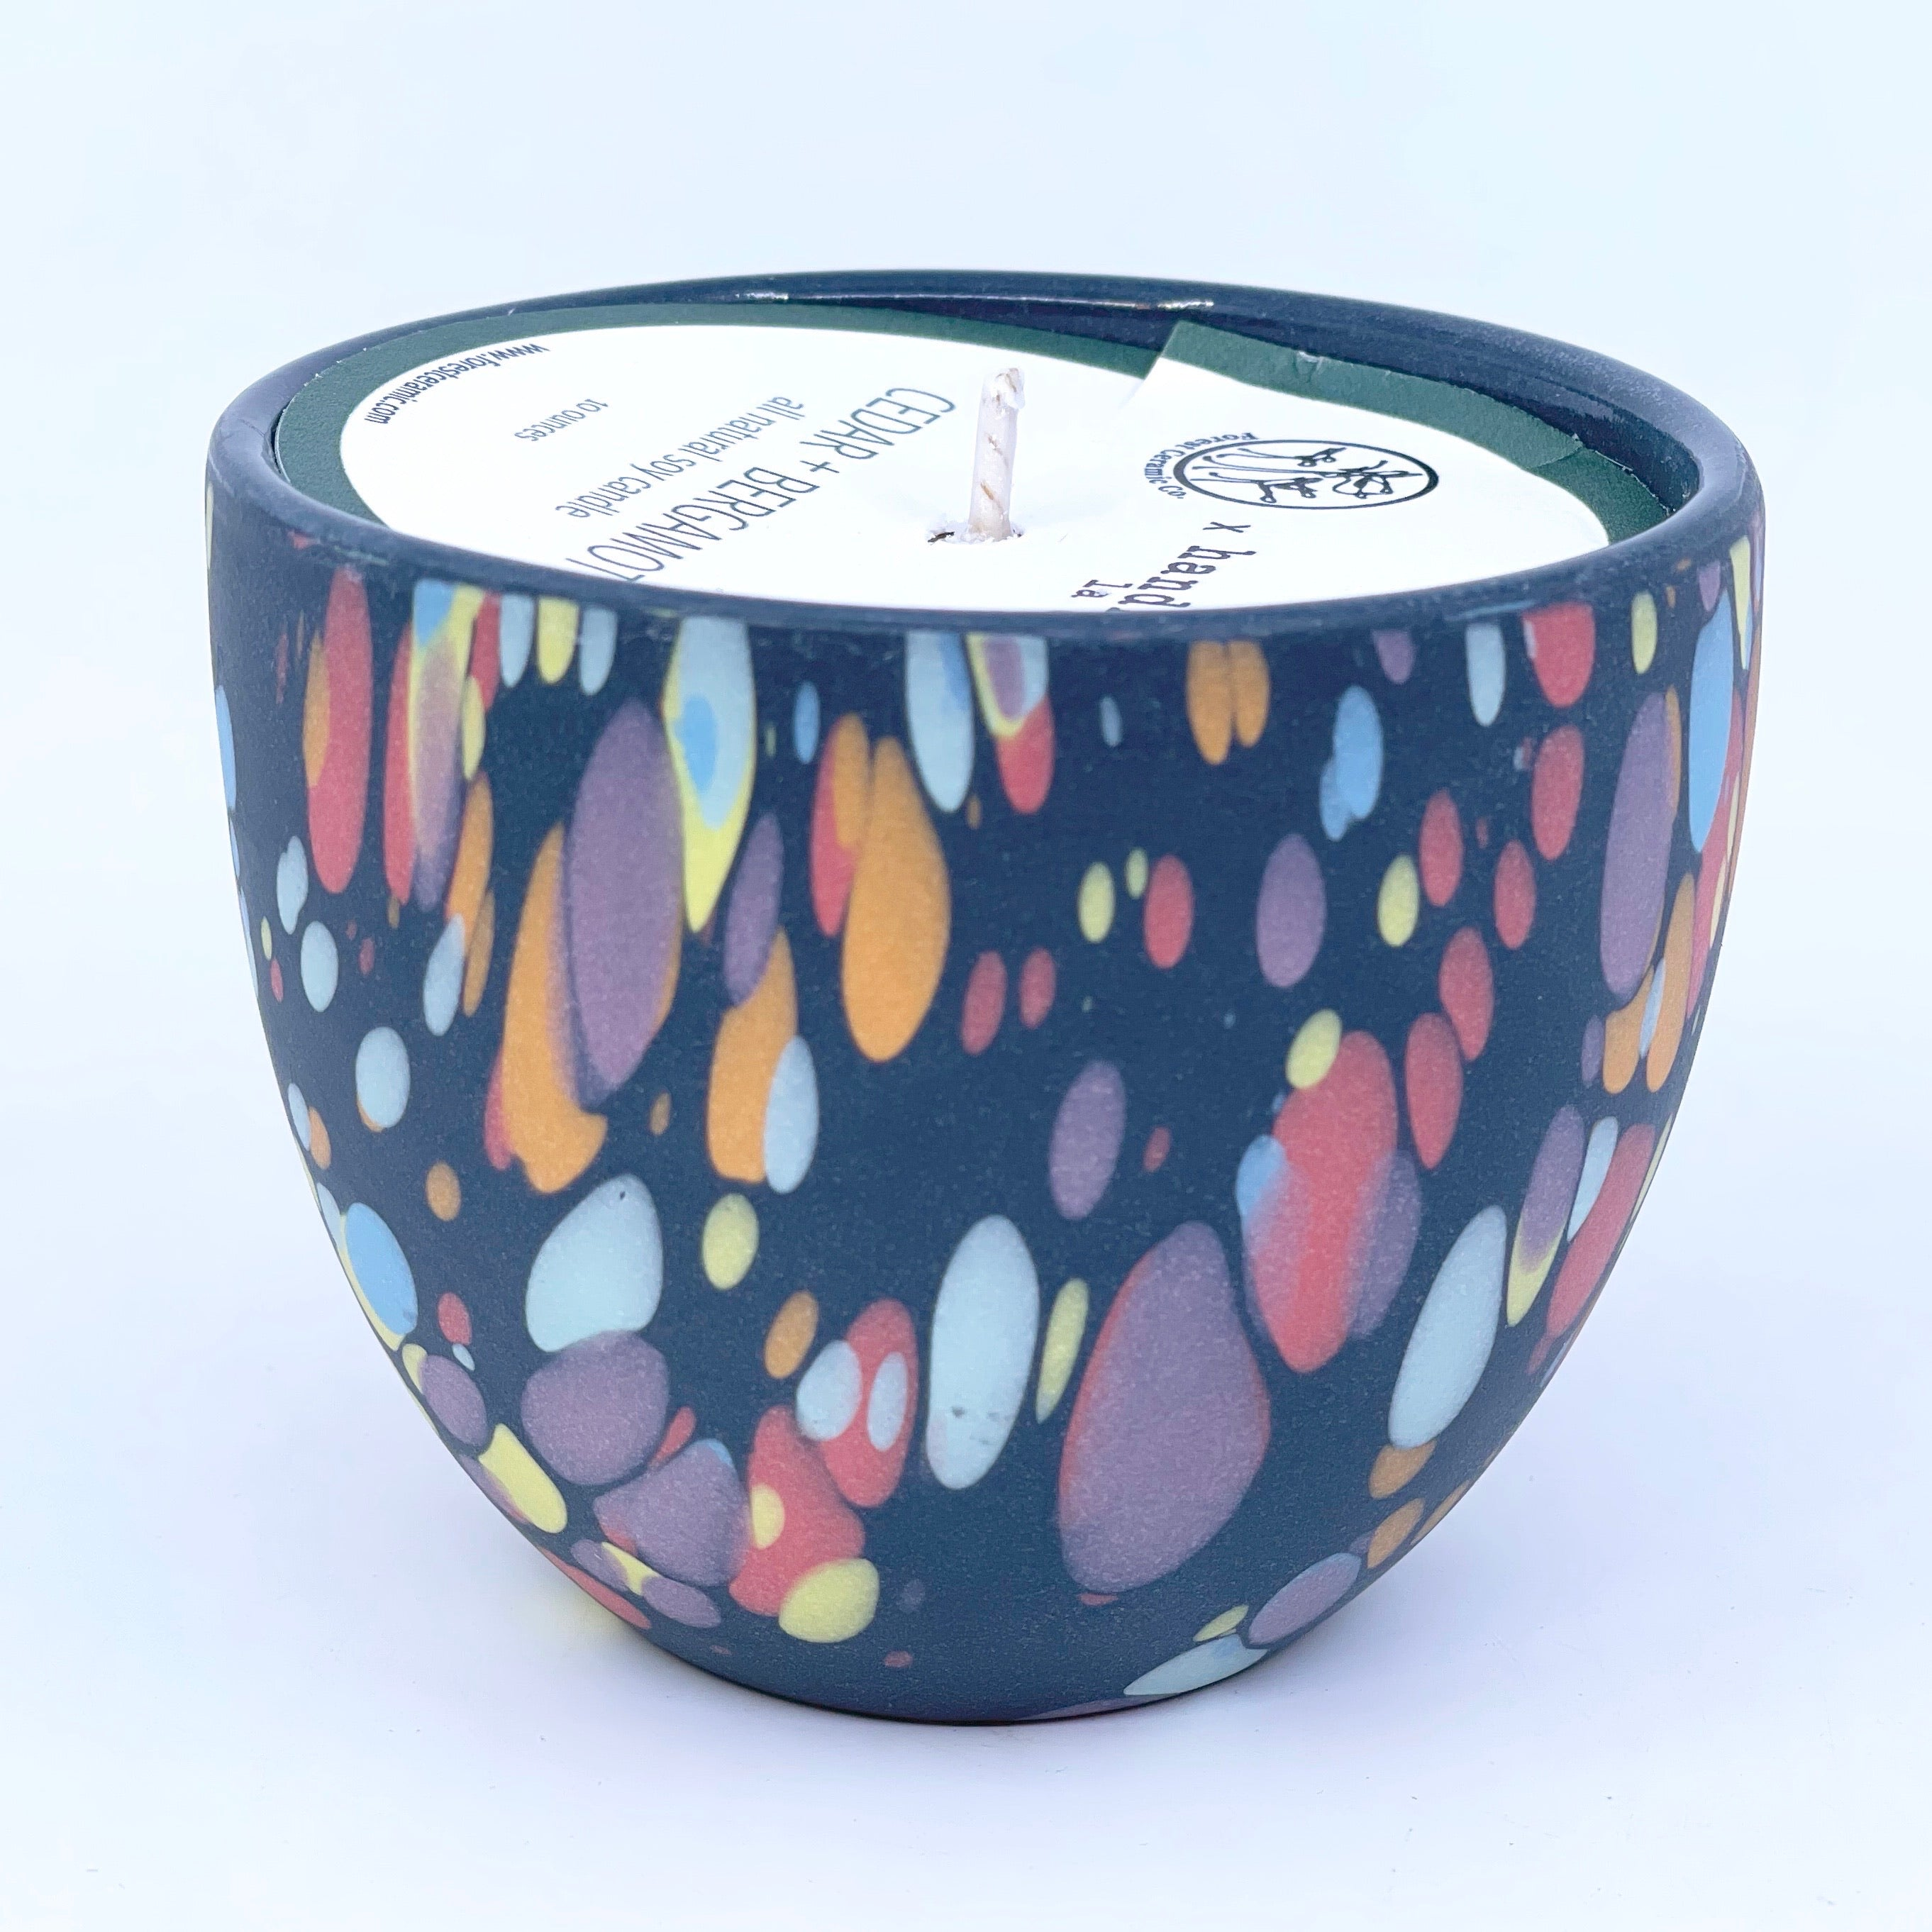 Dappled moon teacup Collaboration Candle